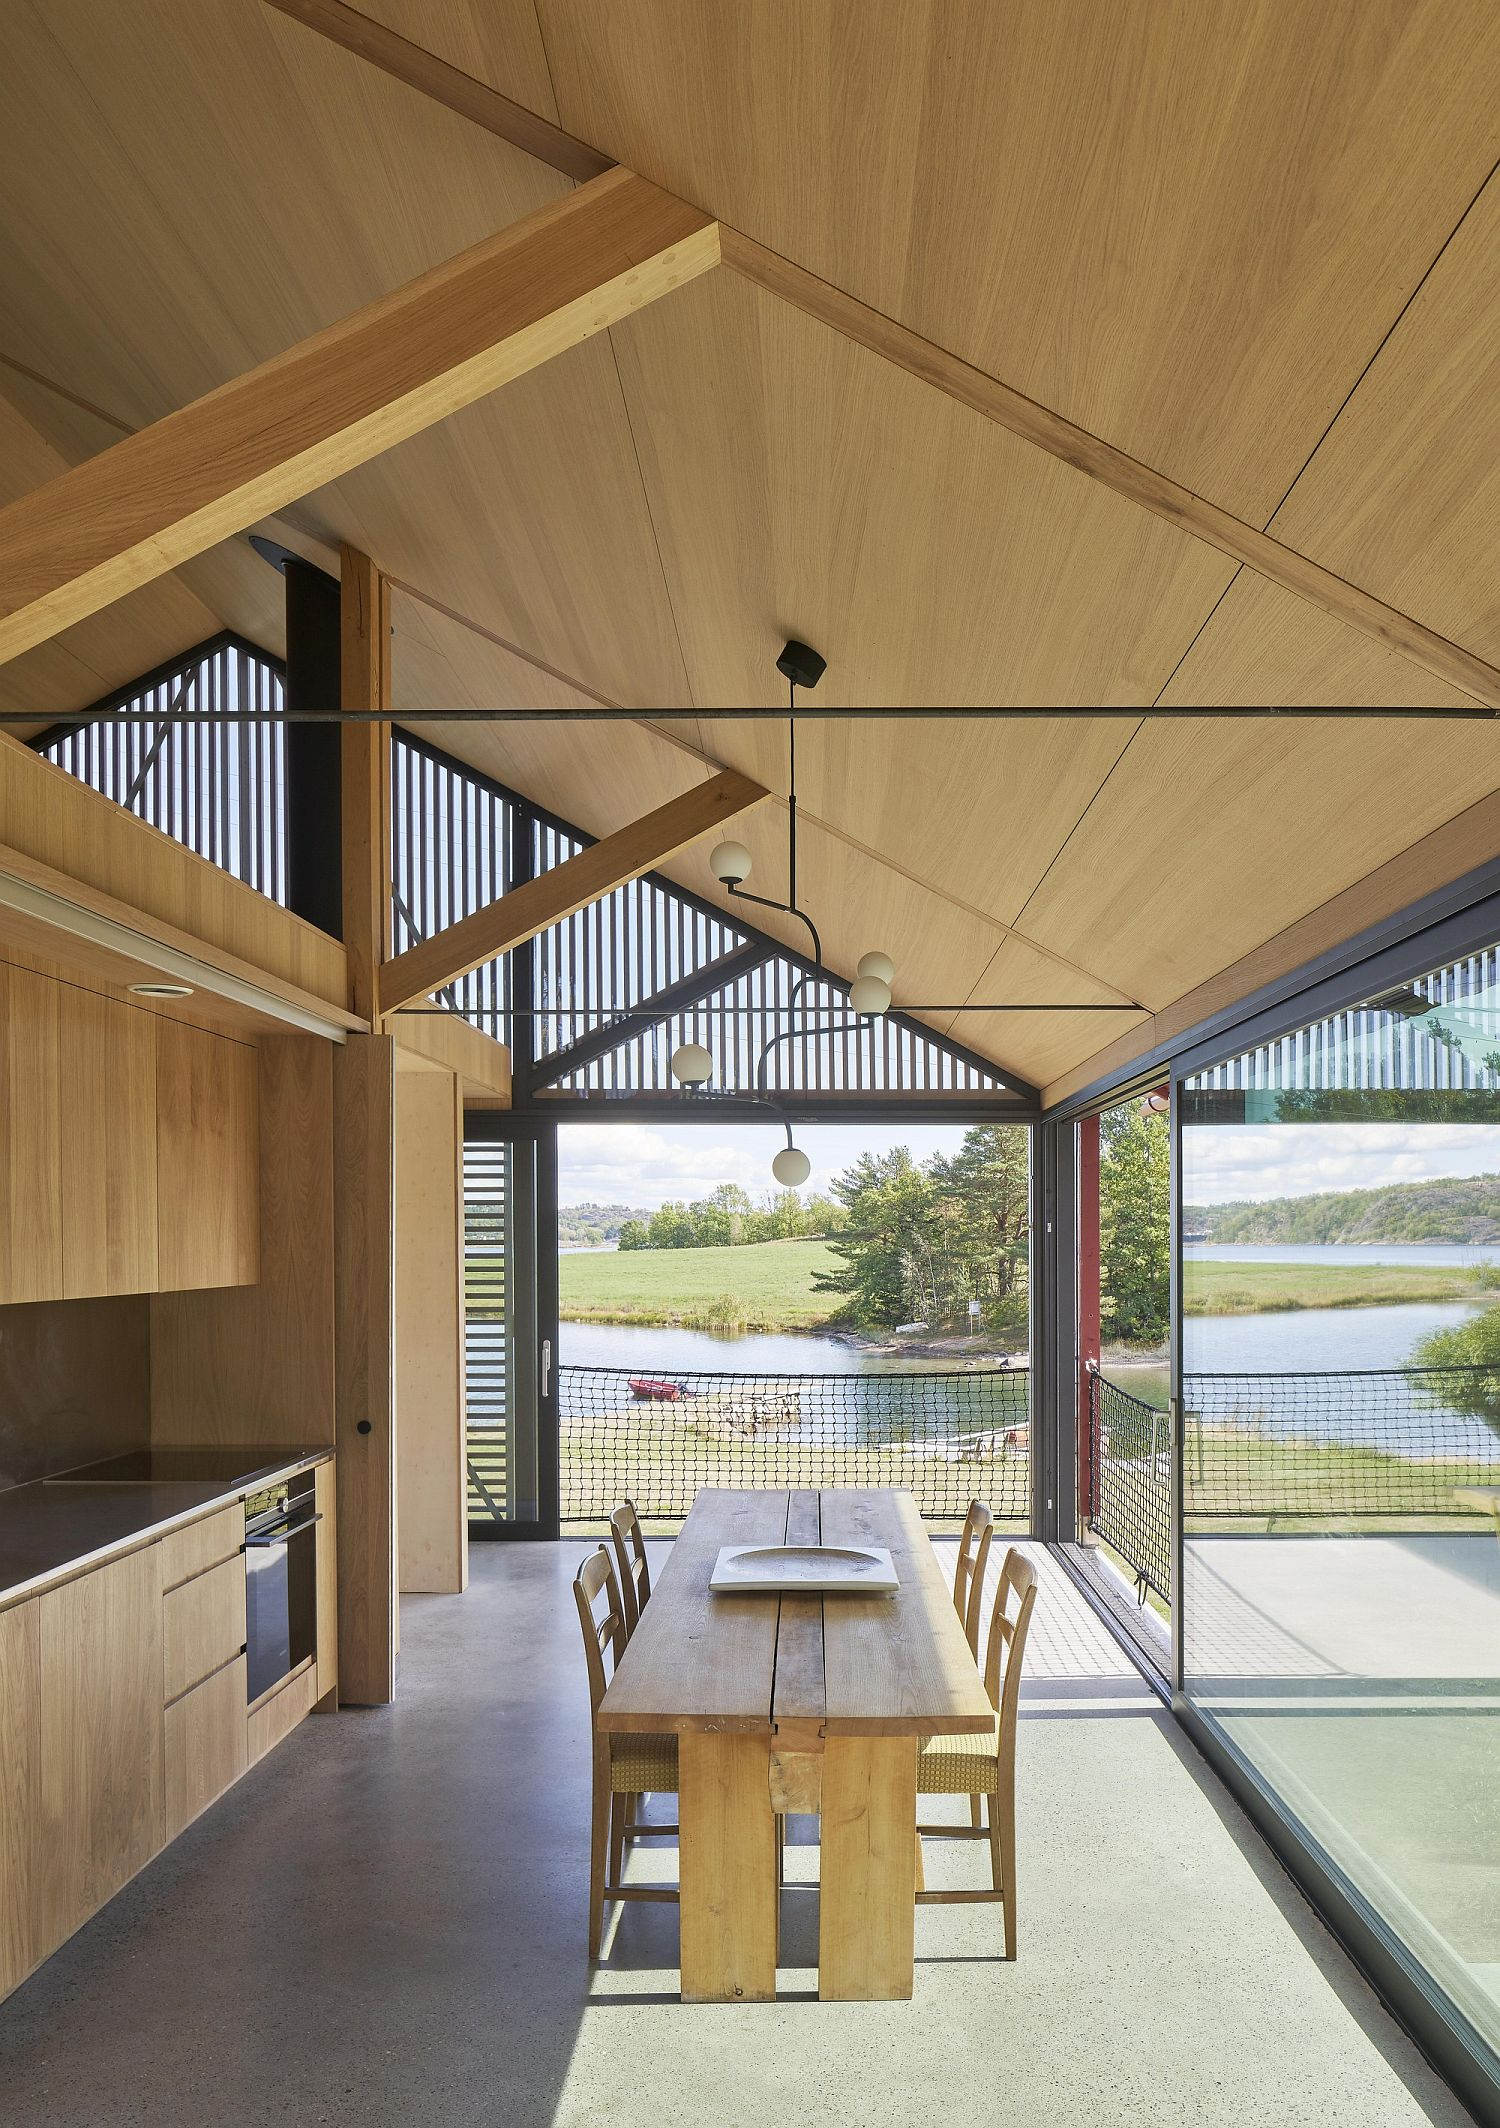 Wooden interior of the cabin feels warm and energizing